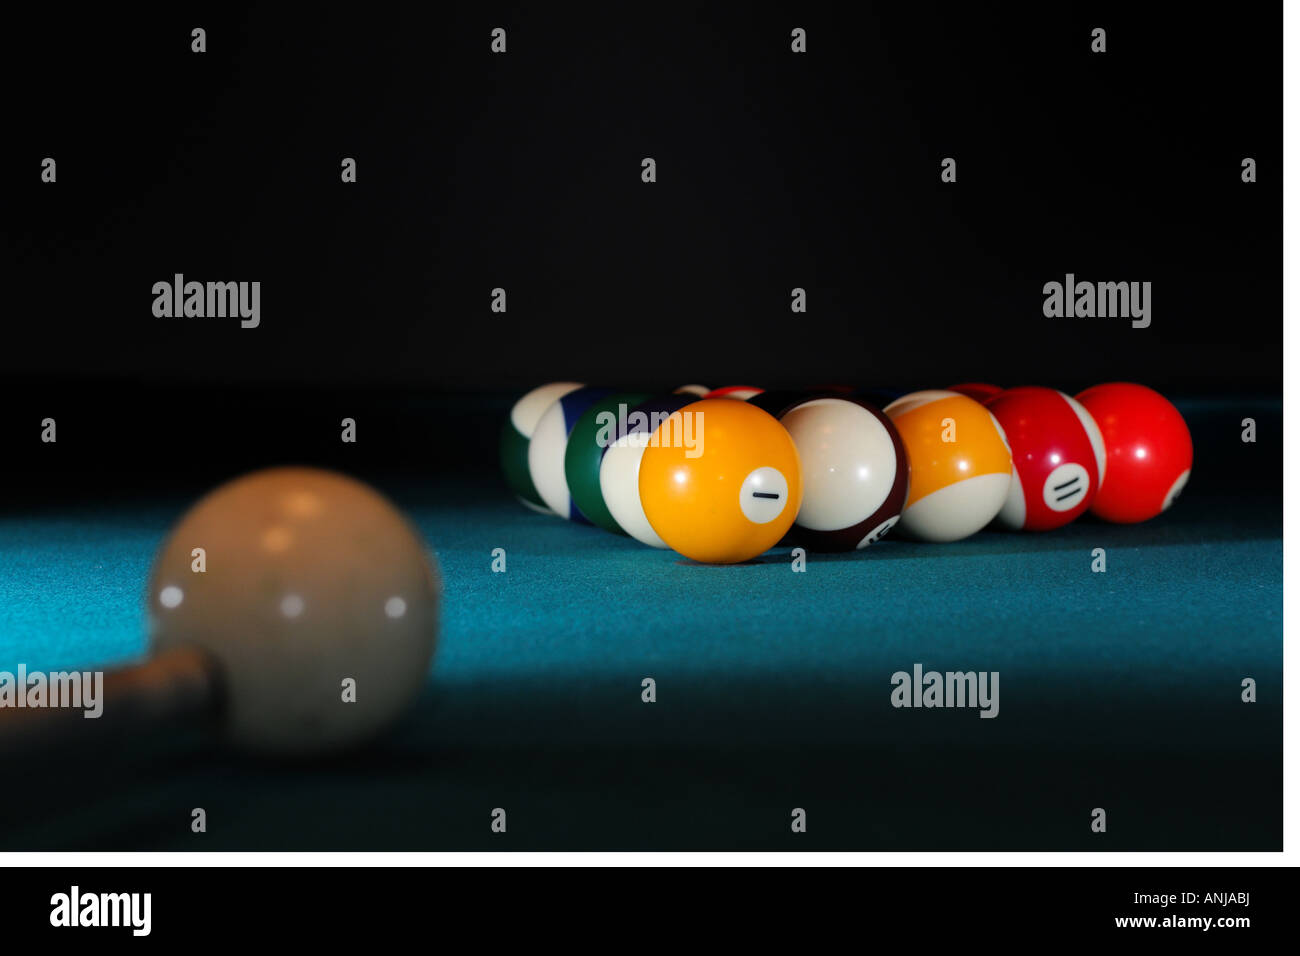 Pool Table Set Up For A Game Stock Photo Alamy - How to set up a pool table